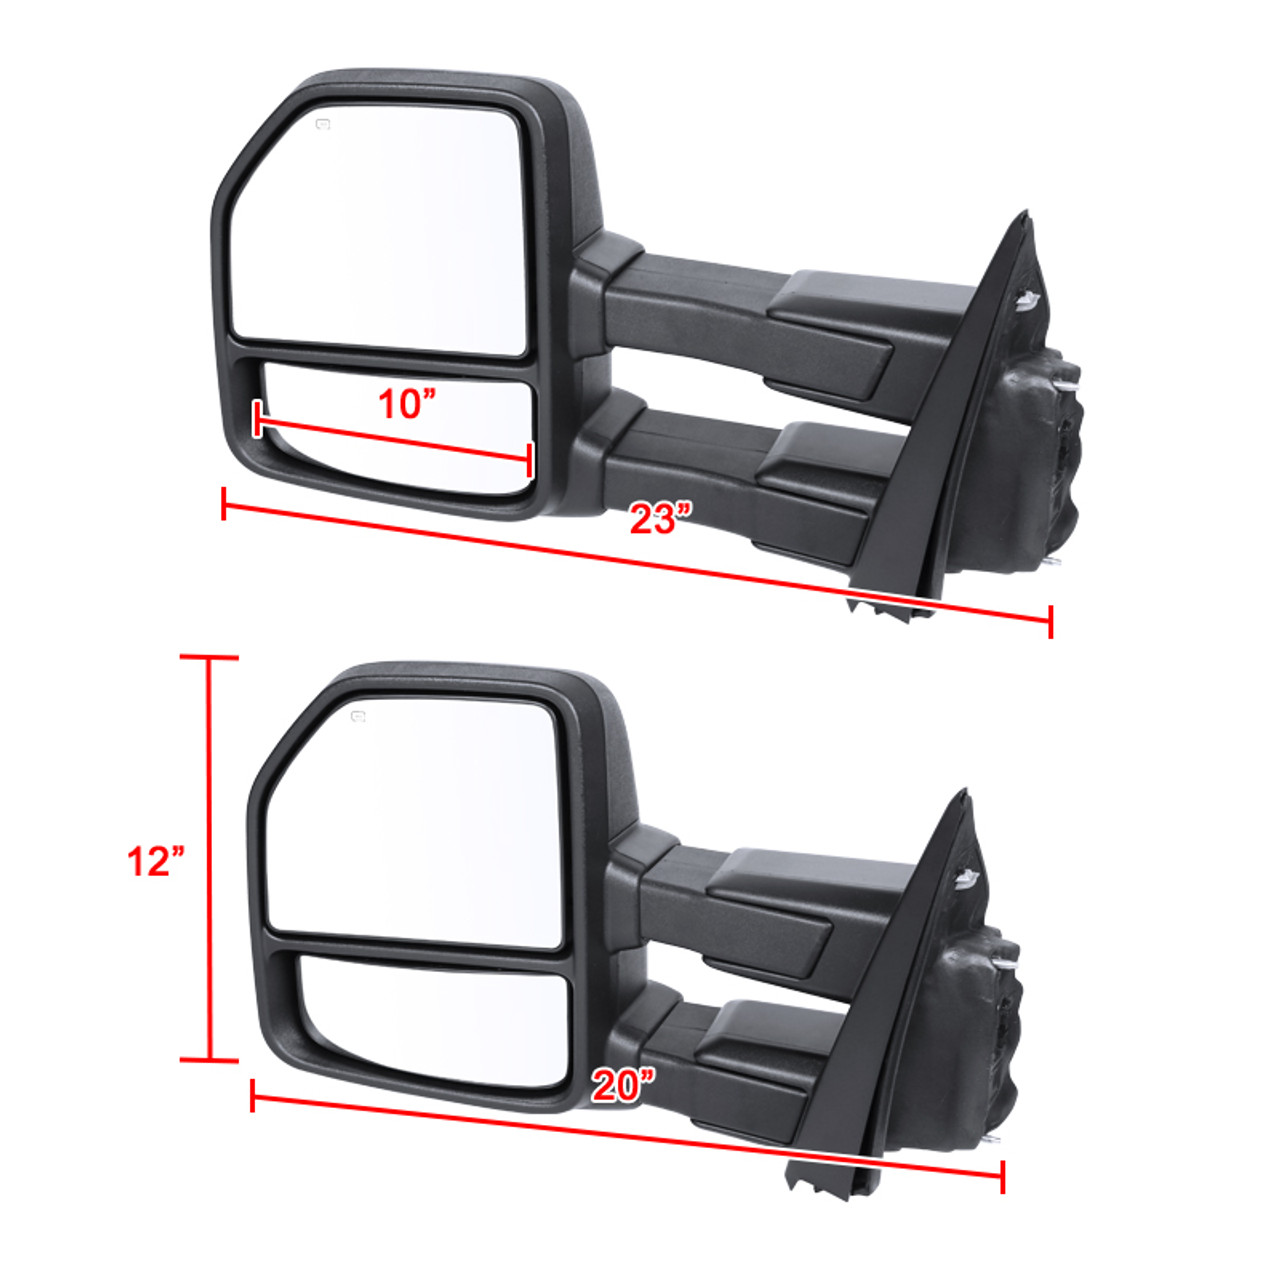 2015 2018 Ford F 150 Power Heated 8 Pin 22 Pin Towing Side Mirrors W Smoke Led Turn Signals Lamps K2 Motor